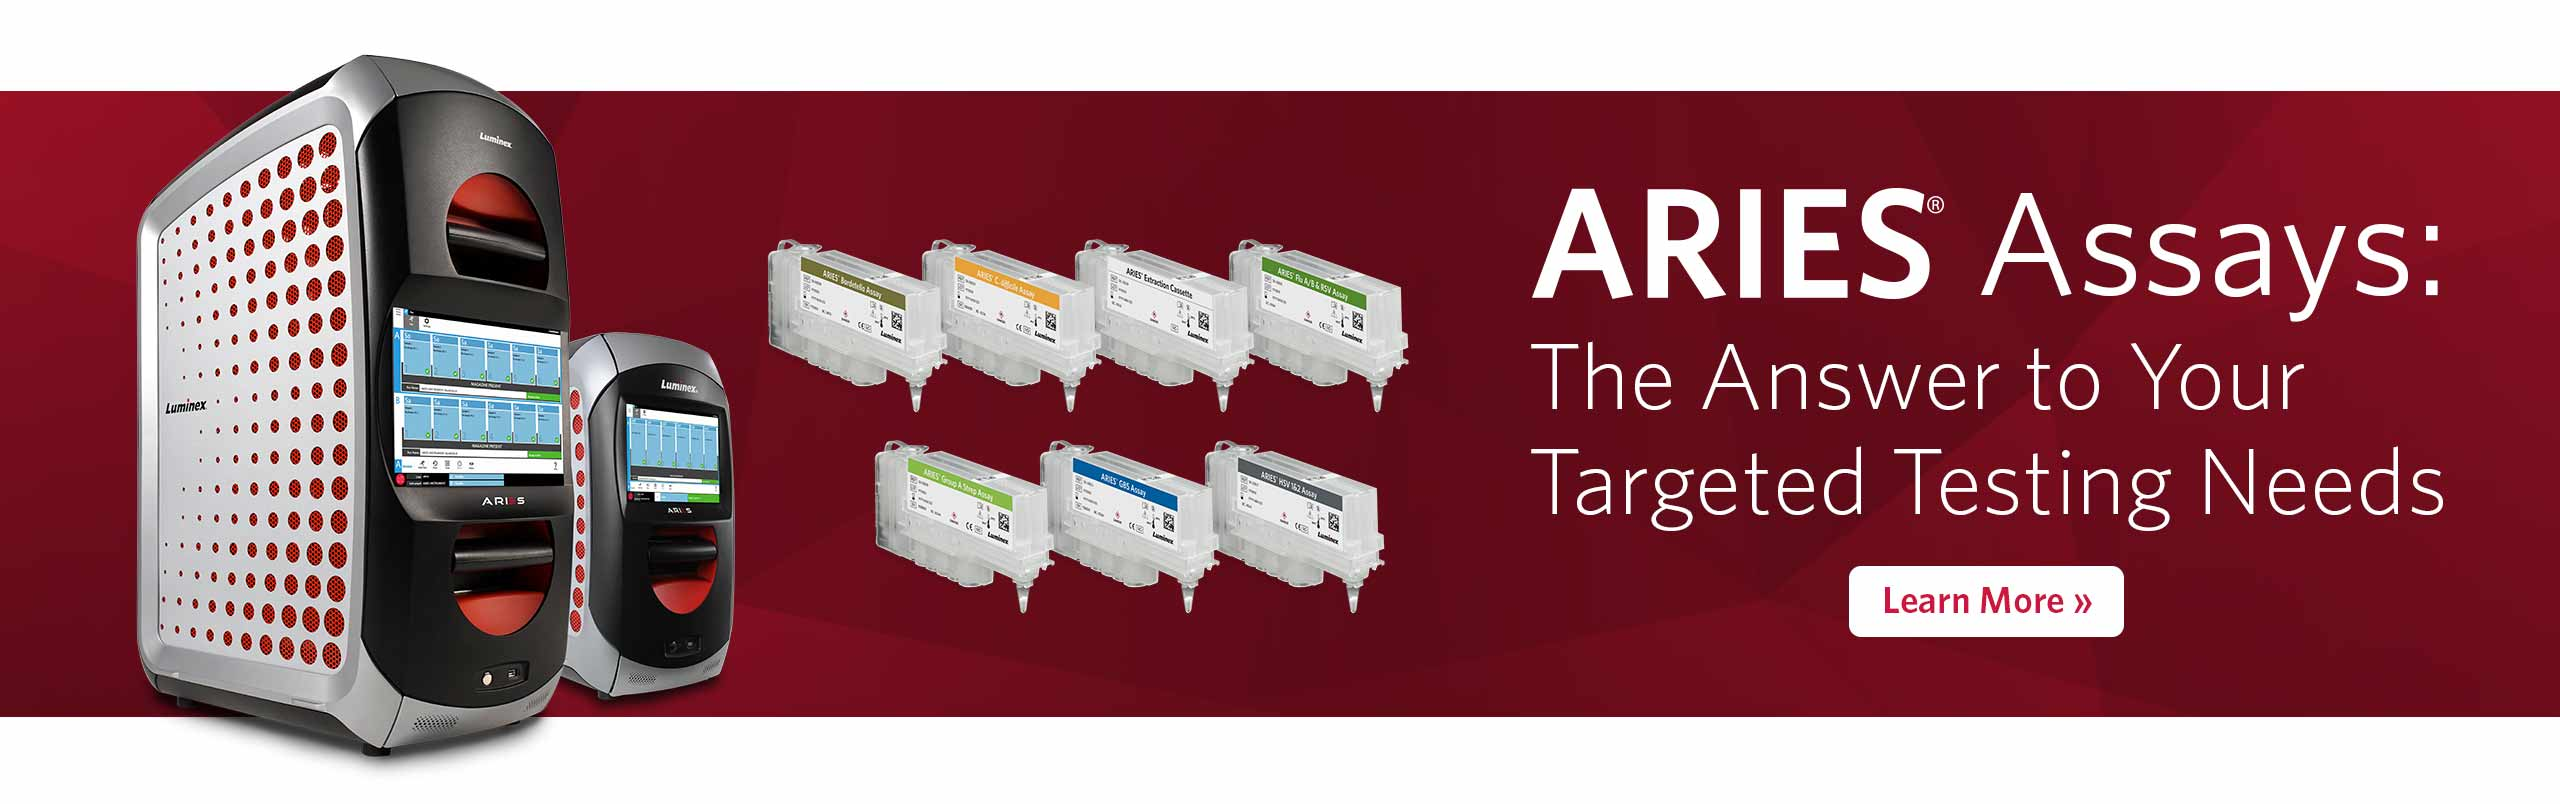 ARIES® Assays: The Answer to Your Targeted Testing Needs